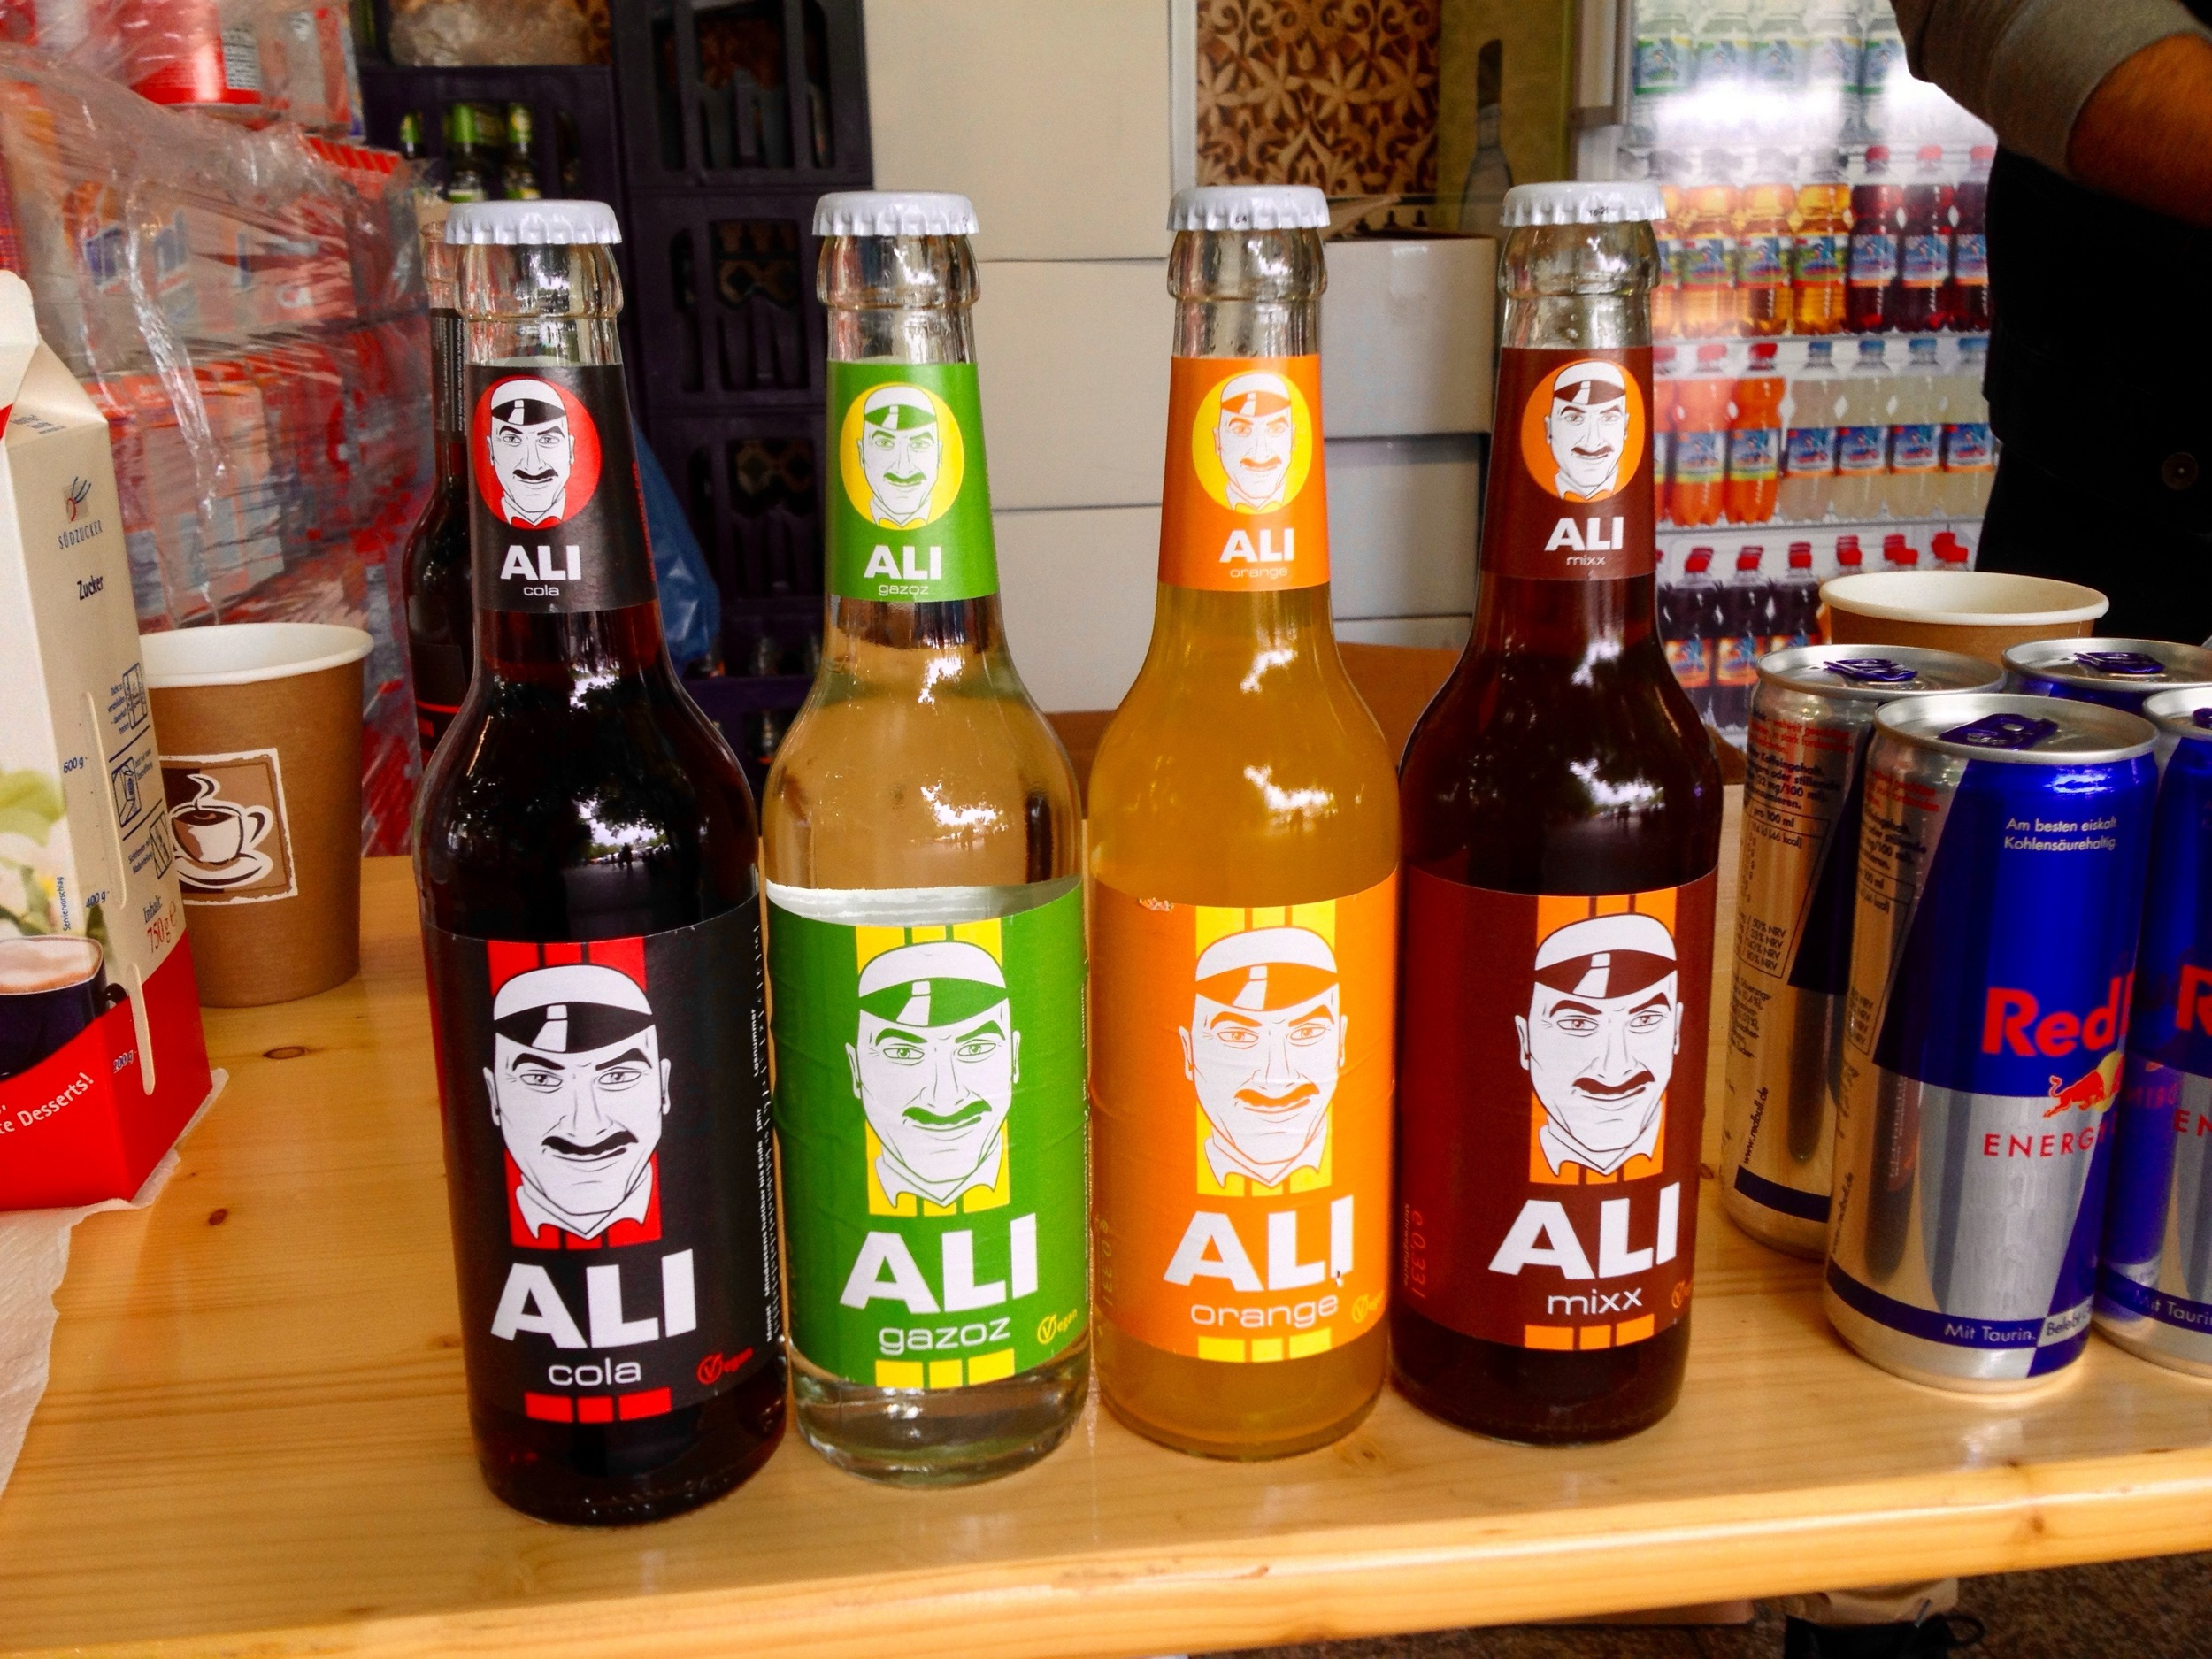 Ali cola at the drink stand